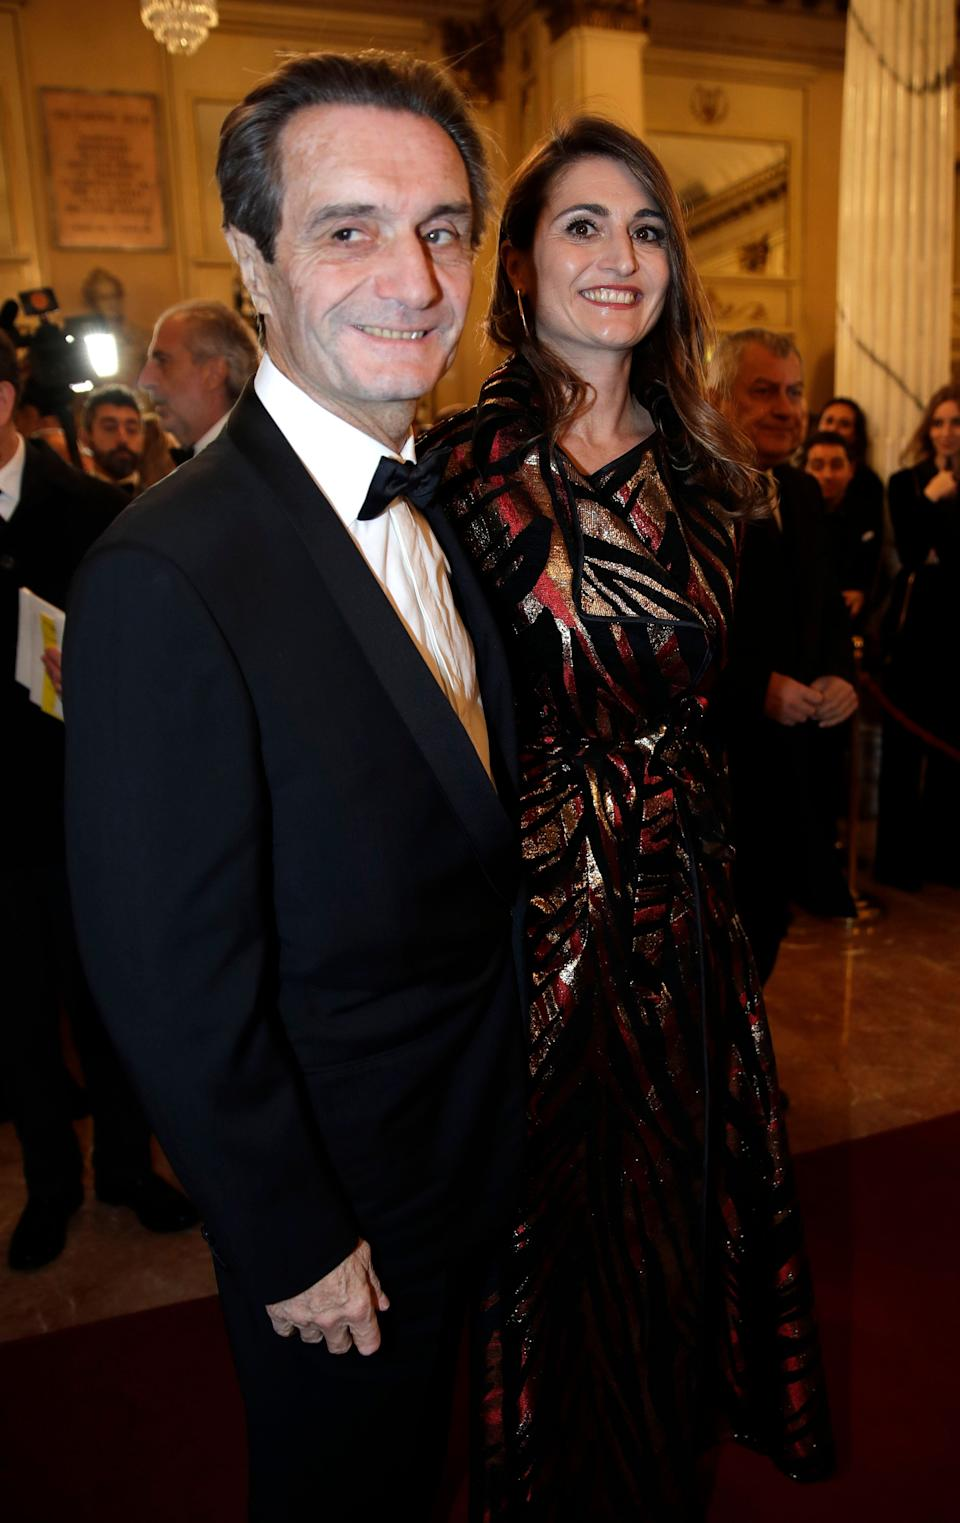 """Lombardy region president Attilio Fontana arrives daughter Maria Cristina flanked by his for the gala premiere of La Scala opera house, in Milan, Italy, Saturday, Dec. 7, 2019. Milan's storied La Scala opens its 2019-2020 season on Saturday with Puccini's """"Tosca,"""" which stars Russian soprano Anna Netrebko as the object of unwanted sexual attention from a powerful authority figure. (AP Photo/Luca Bruno) (Photo: ASSOCIATED PRESS)"""